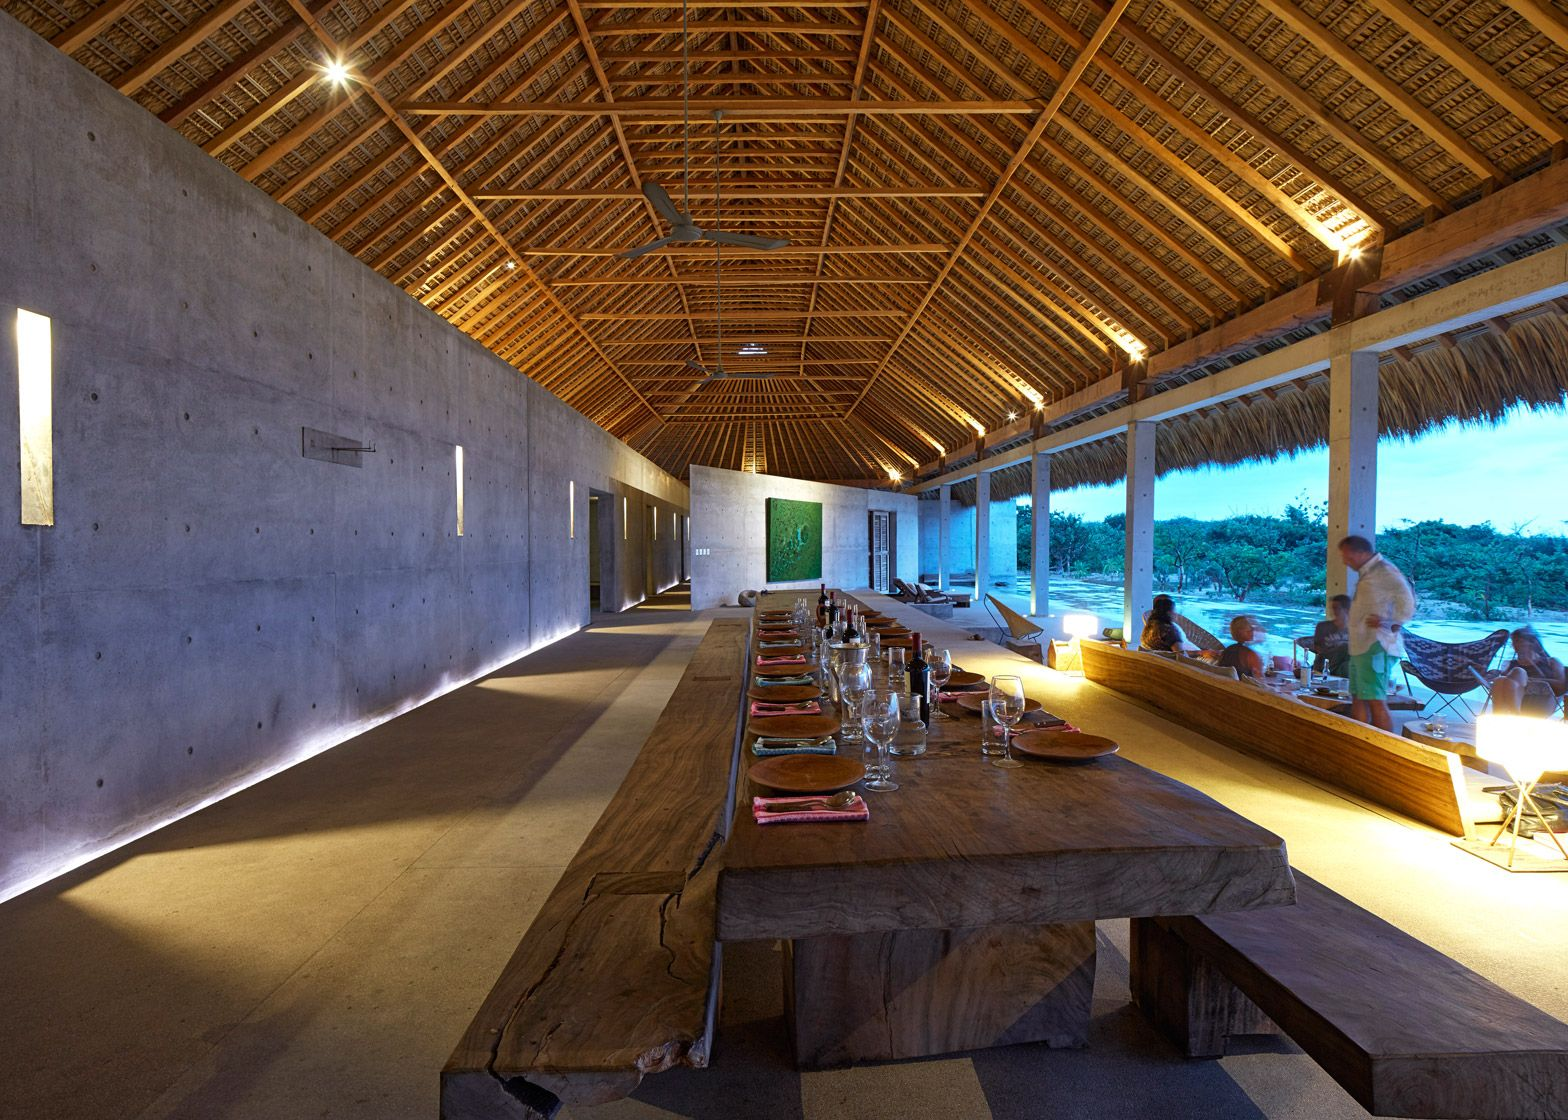 Casa wabi is an artist 39 s retreat along the mexican coast for Casa moderna 4x4